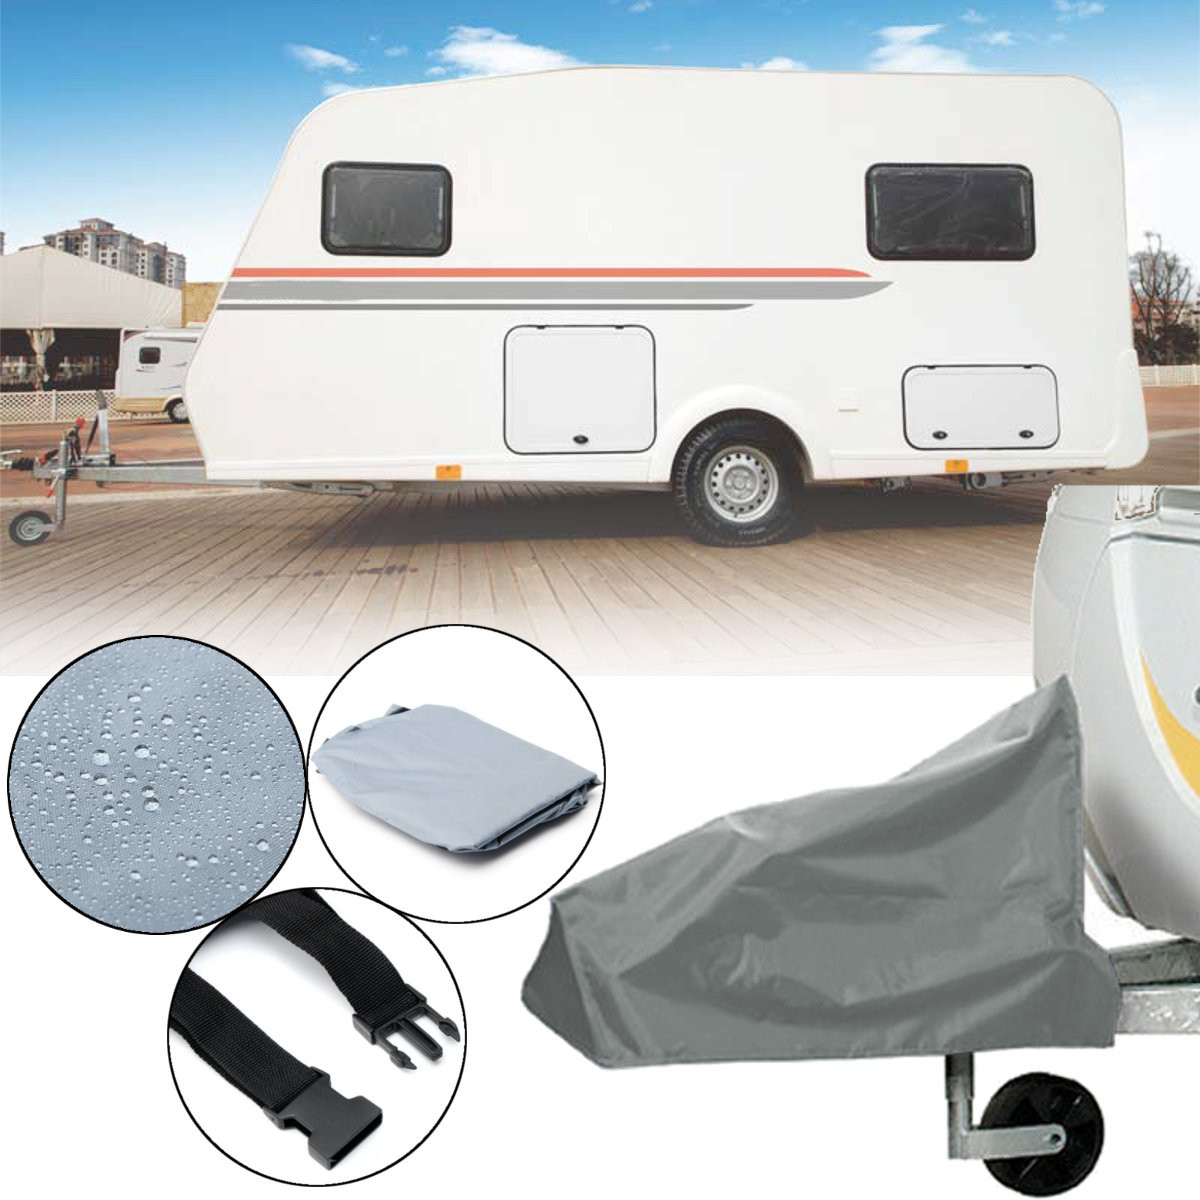 Can You Add A Trailer Hitch To A Travel Trailer